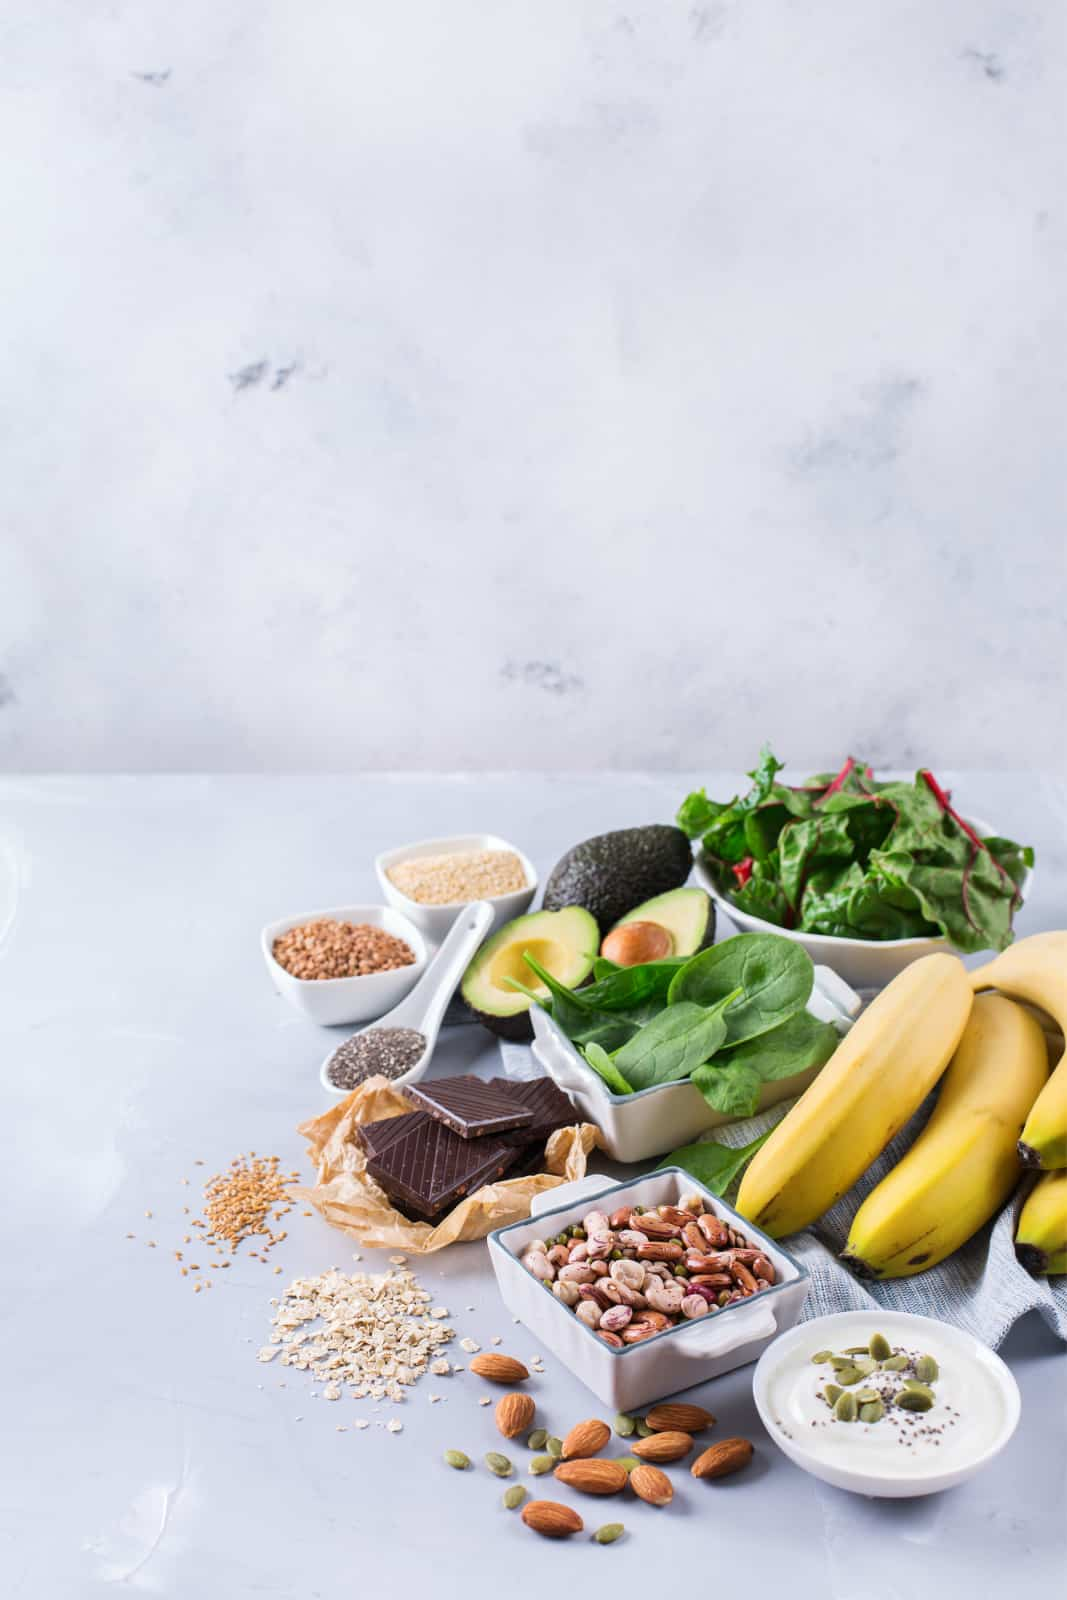 A white marble backdrop and countertop is piled with magnesium rich foods: spinach, bananas, avocado, almonds, dark chocolate, seeds, chia seeds, and Swiss chard.